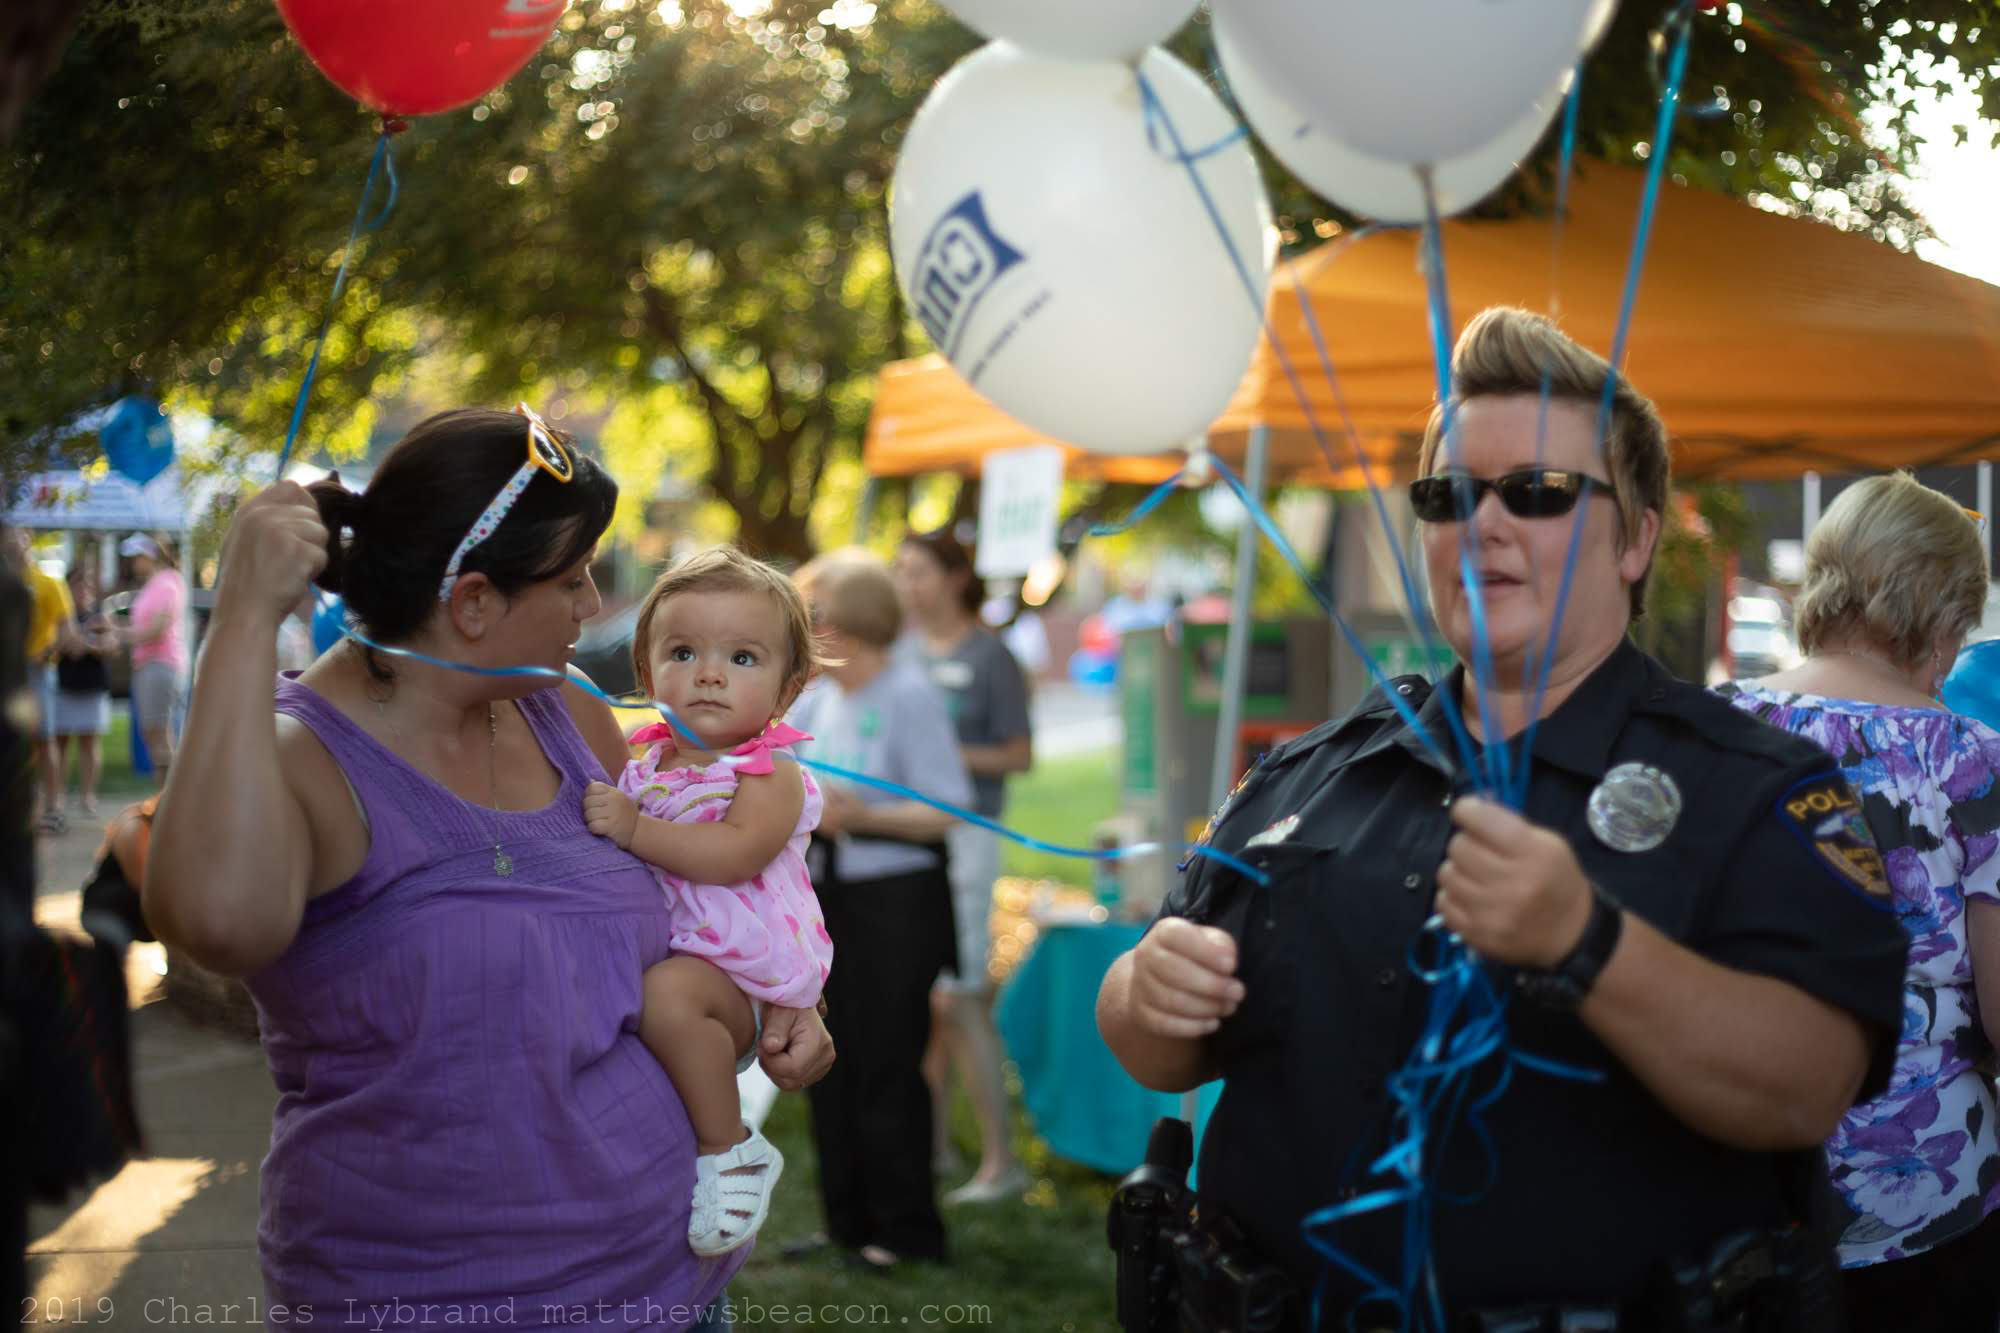 beacon national night out balloons 1.jpg